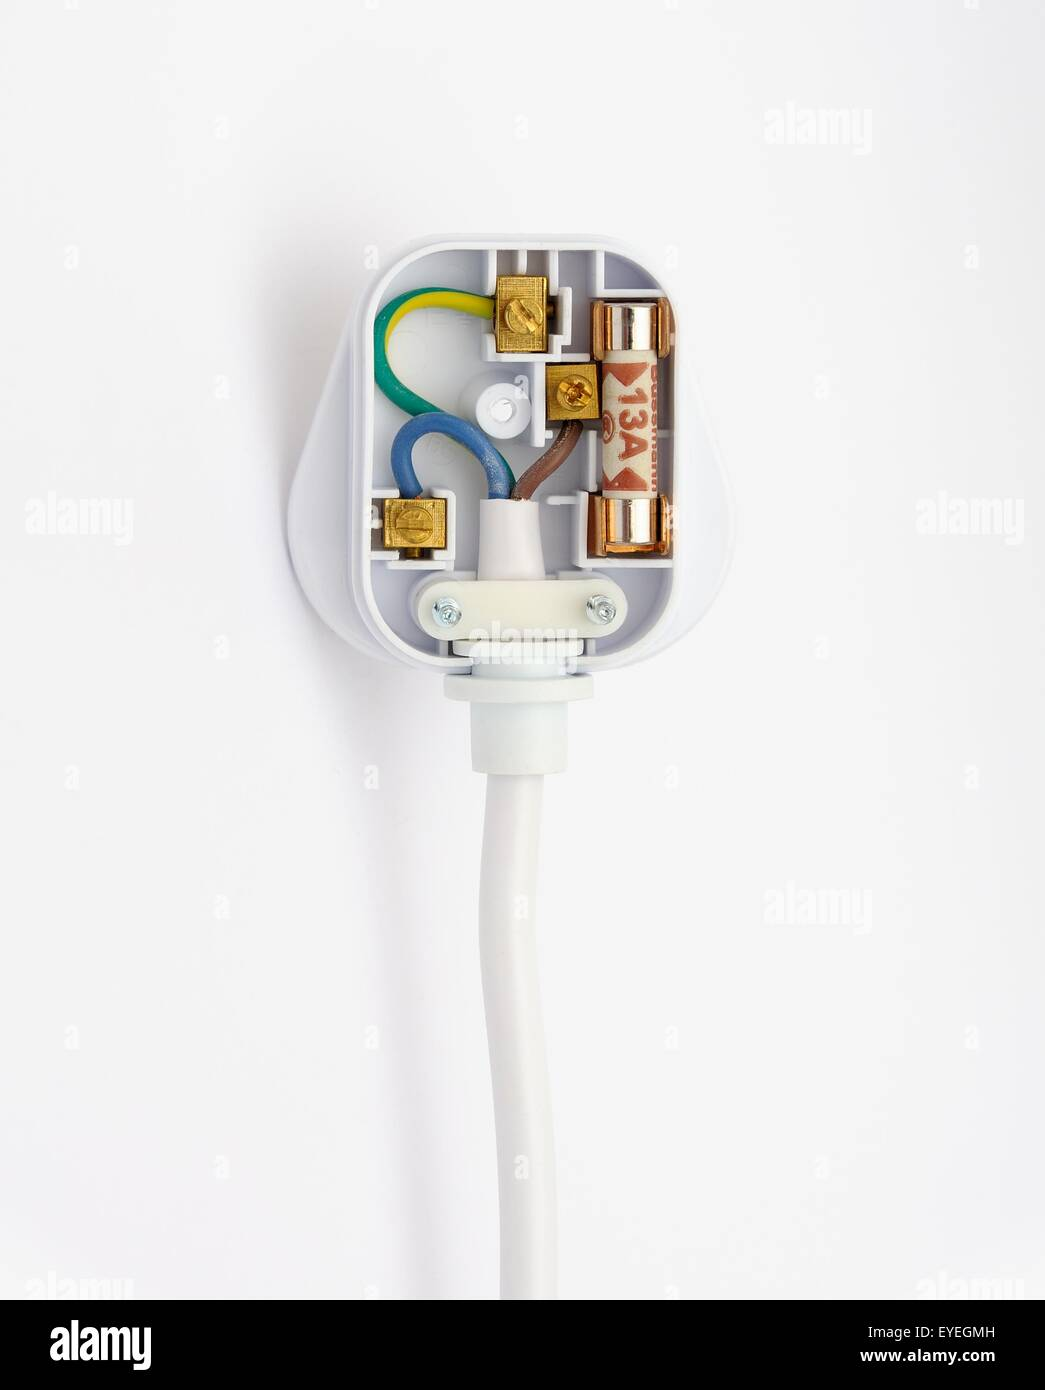 A 13 amp fused domestic plug showing the internal wiring layout. - Stock Image